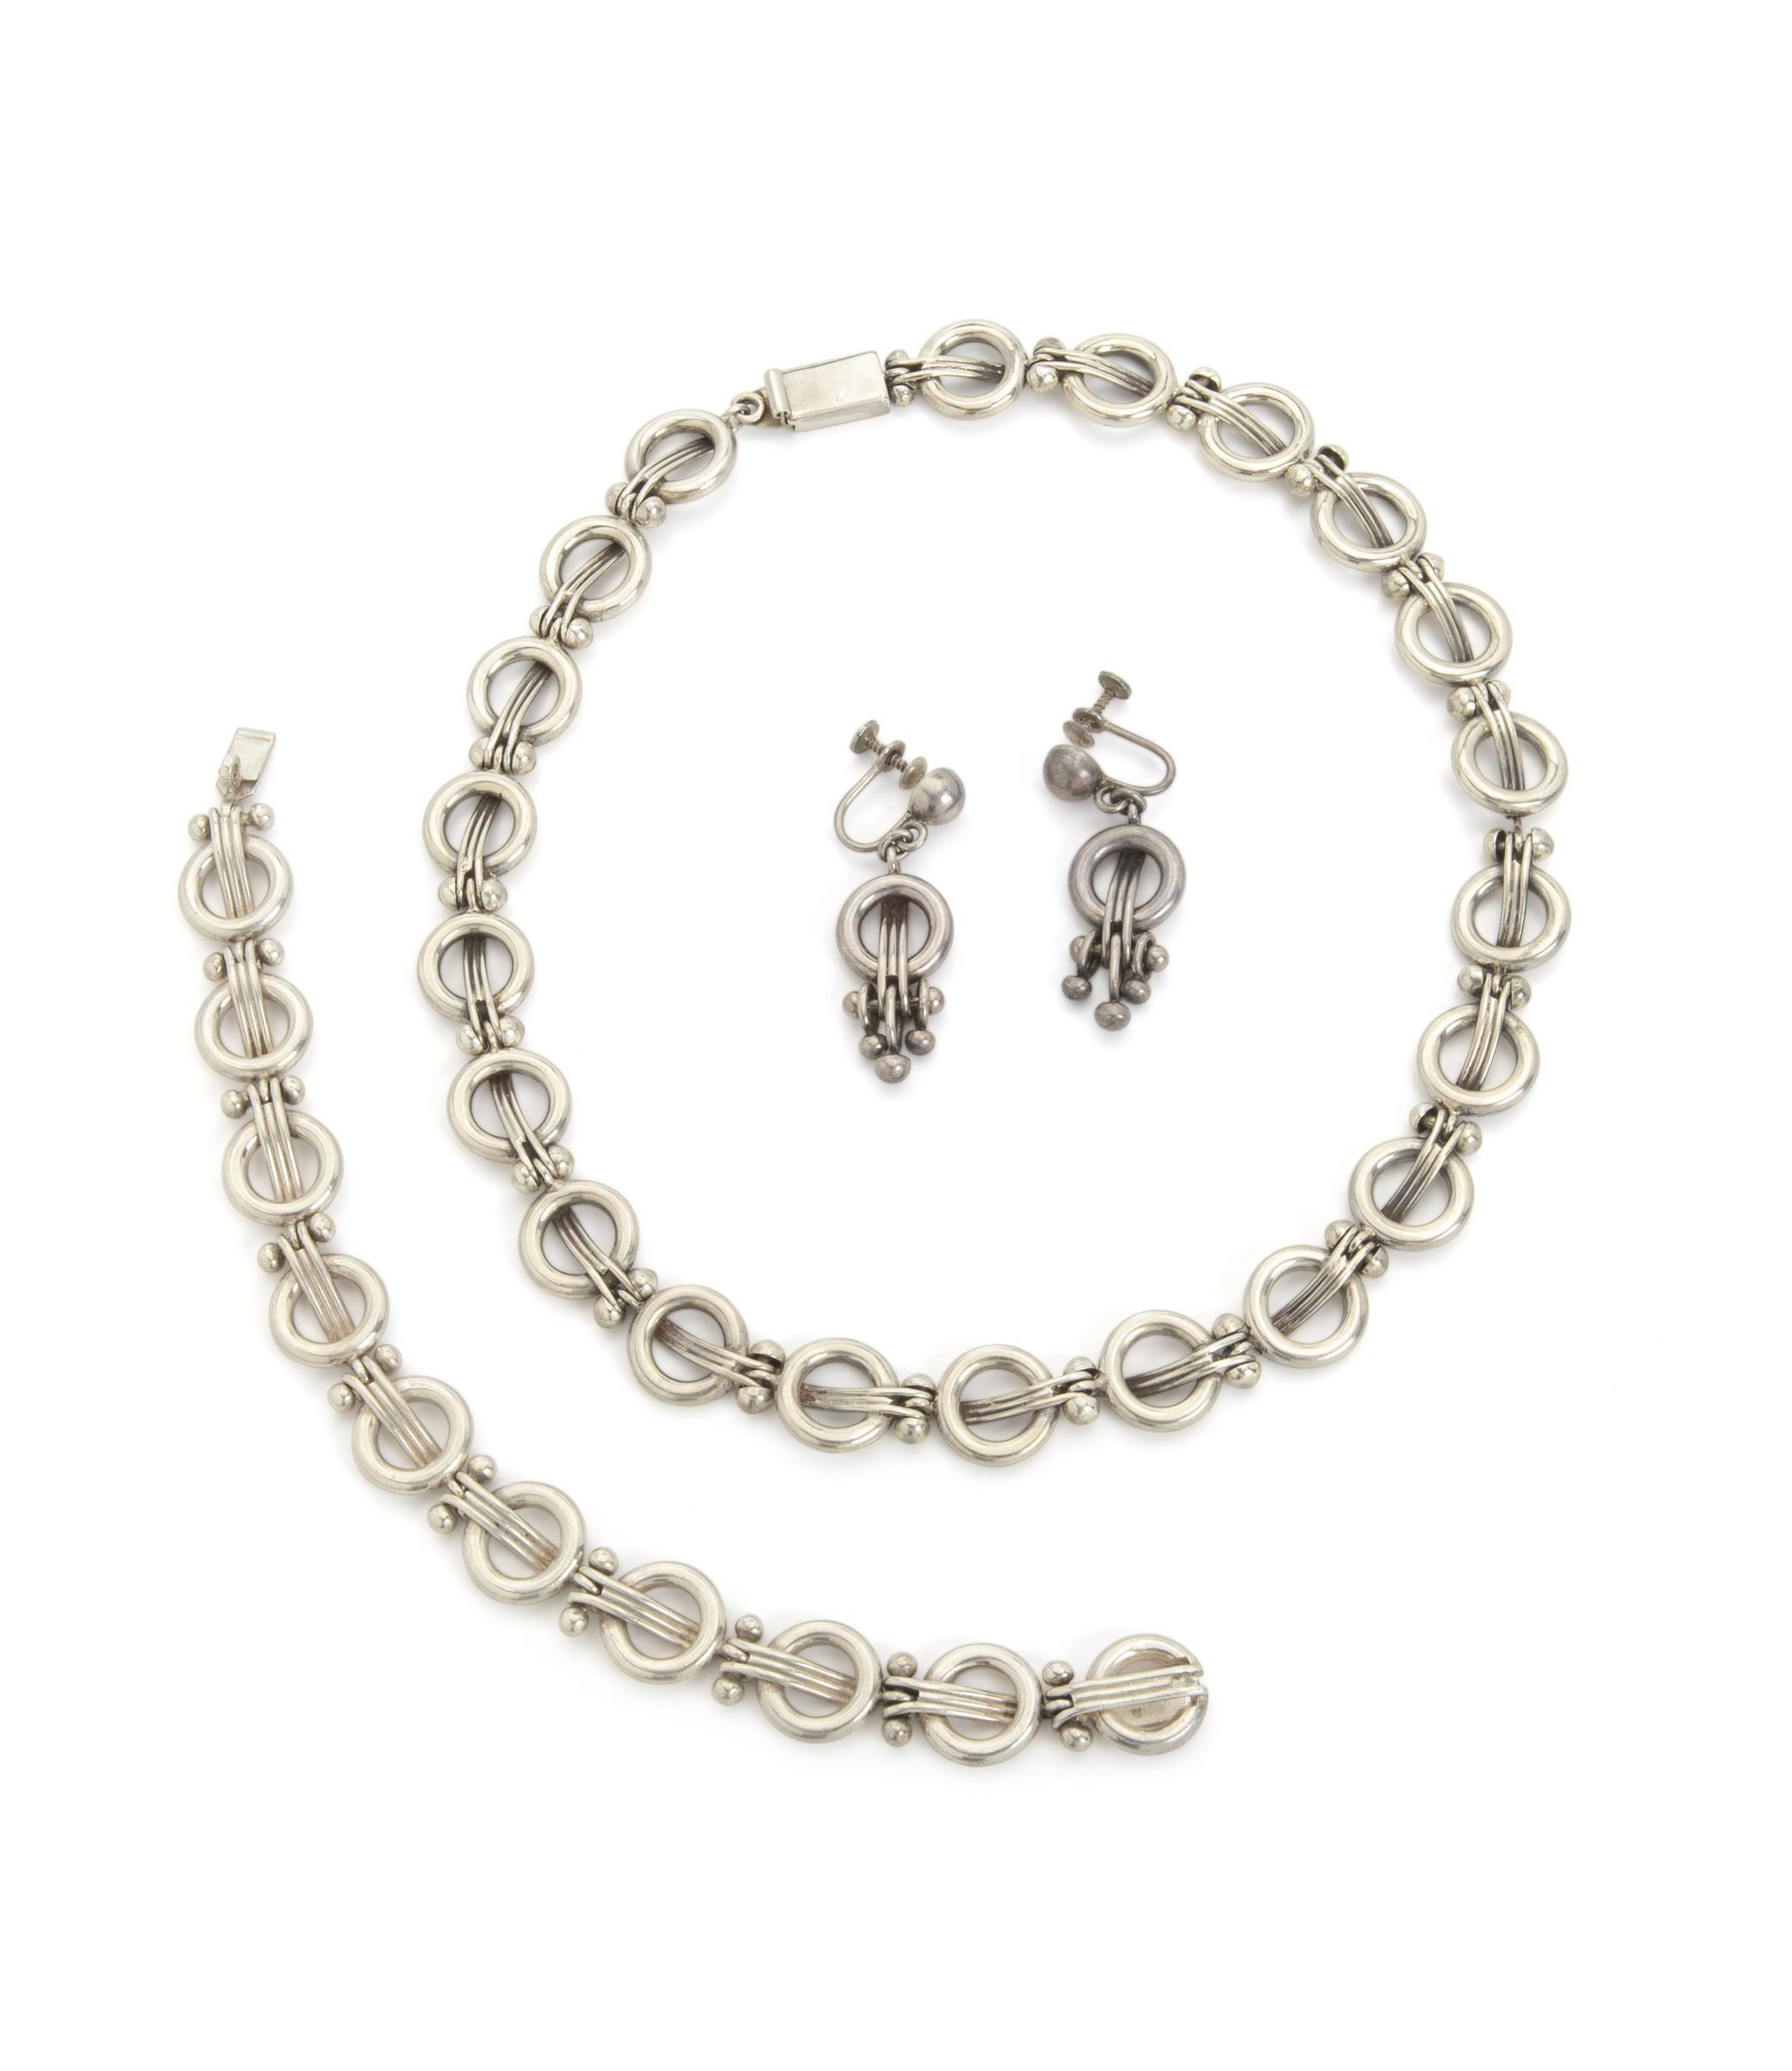 A suite of Hector Aguilar 940 silver jewelry